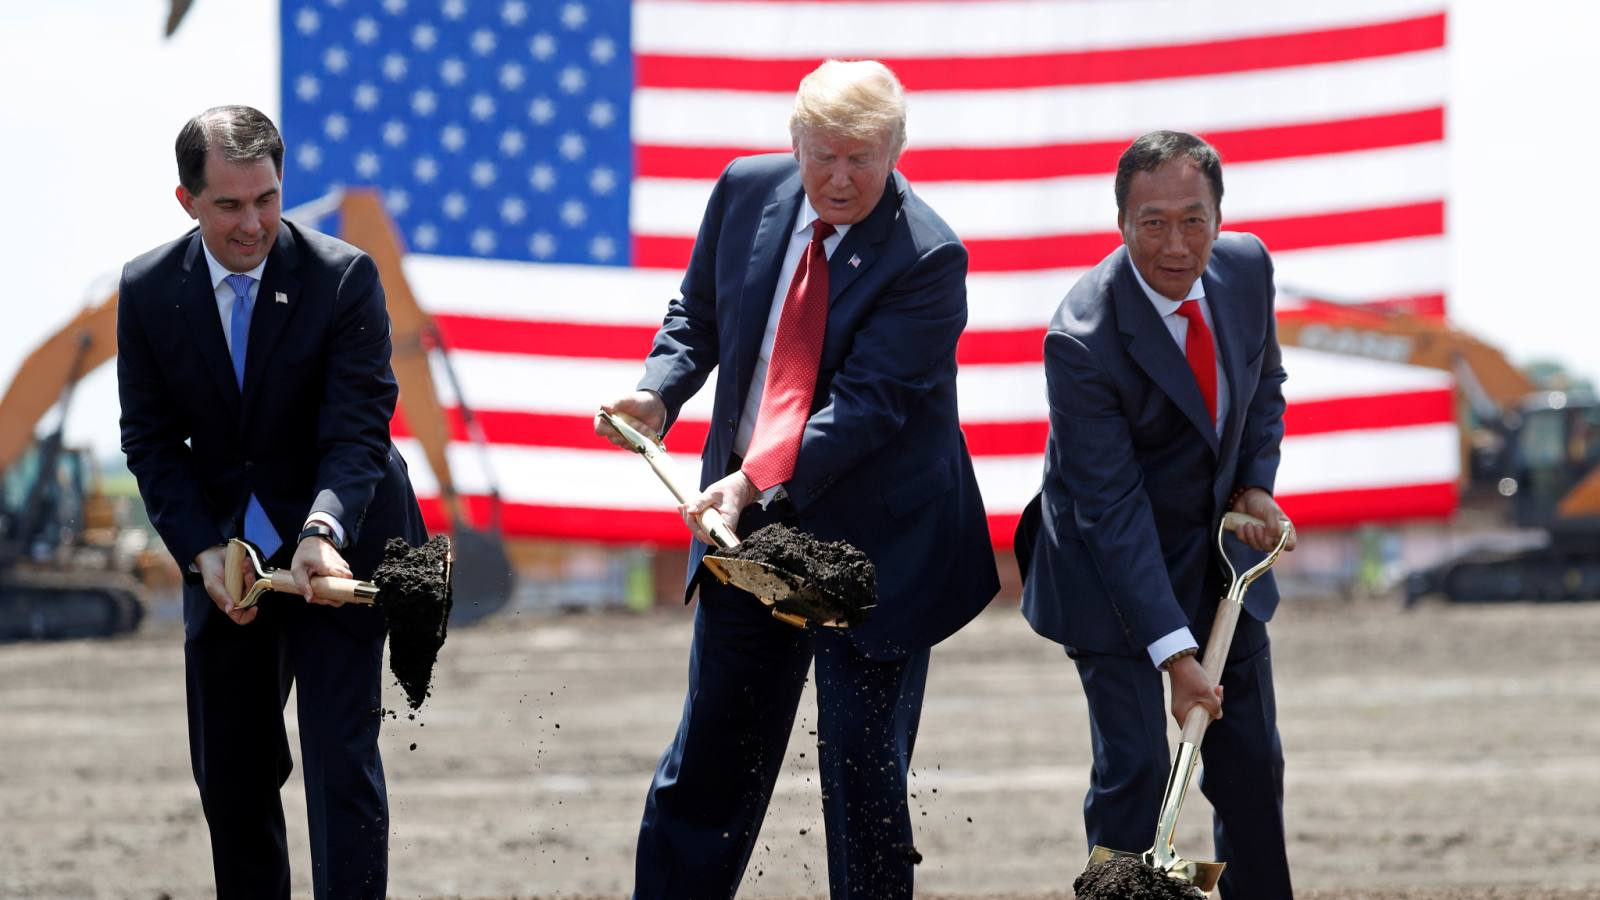 U.S. President Donald Trump takes part in a groundbreaking with Wisconsin Governor Scott Walker,left, and Foxconn Chairman Terry Gou, right, during a visit to Foxconn's new site in Mount Pleasant, Wisconsin, U.S. on June 28.